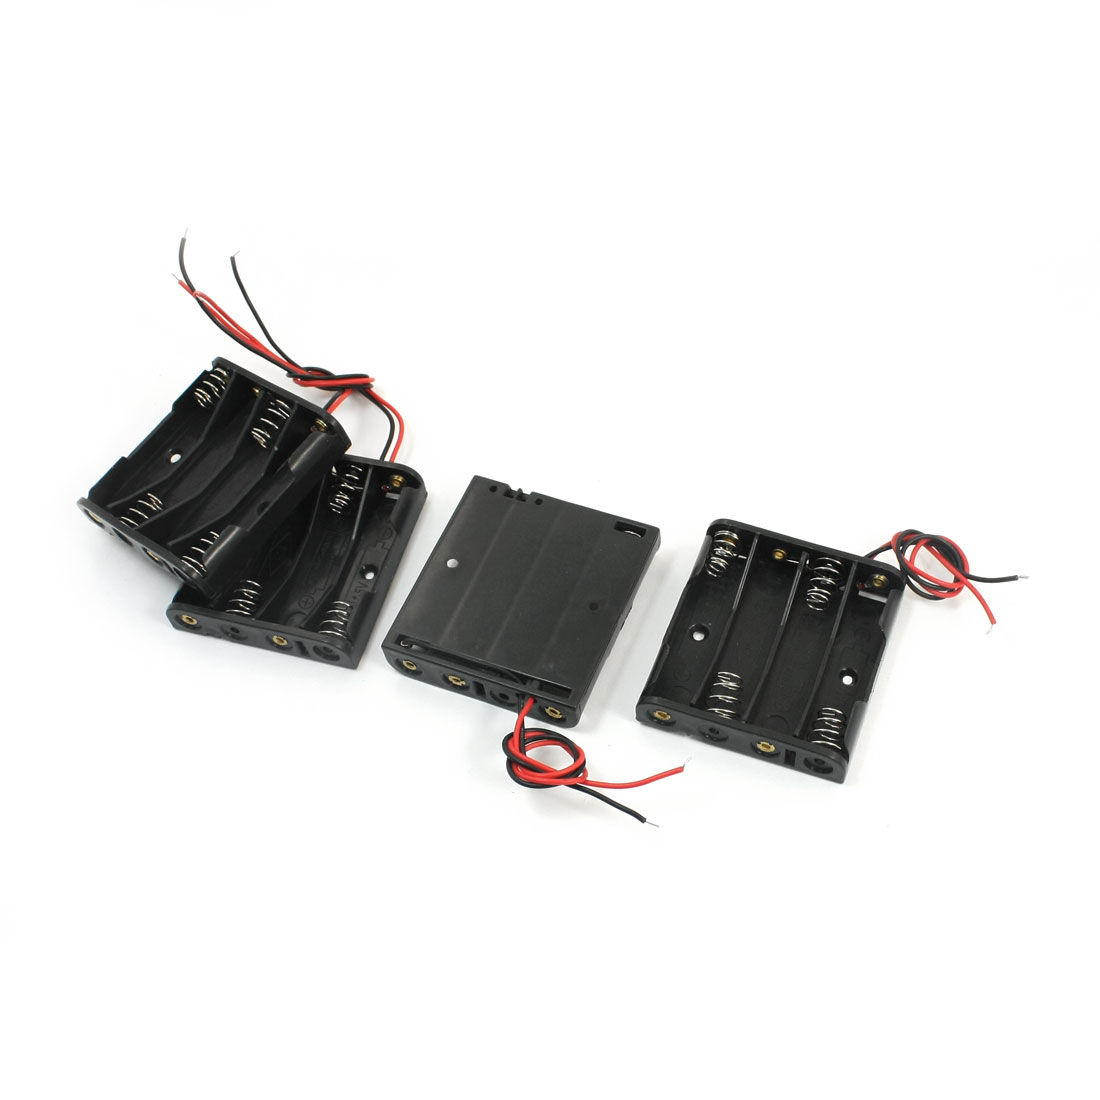 4Pcs 4 x 1.5V AAA Wire Leads Black Plastic Spring Clip Battery Holder 54mm x 50mm x 12mm